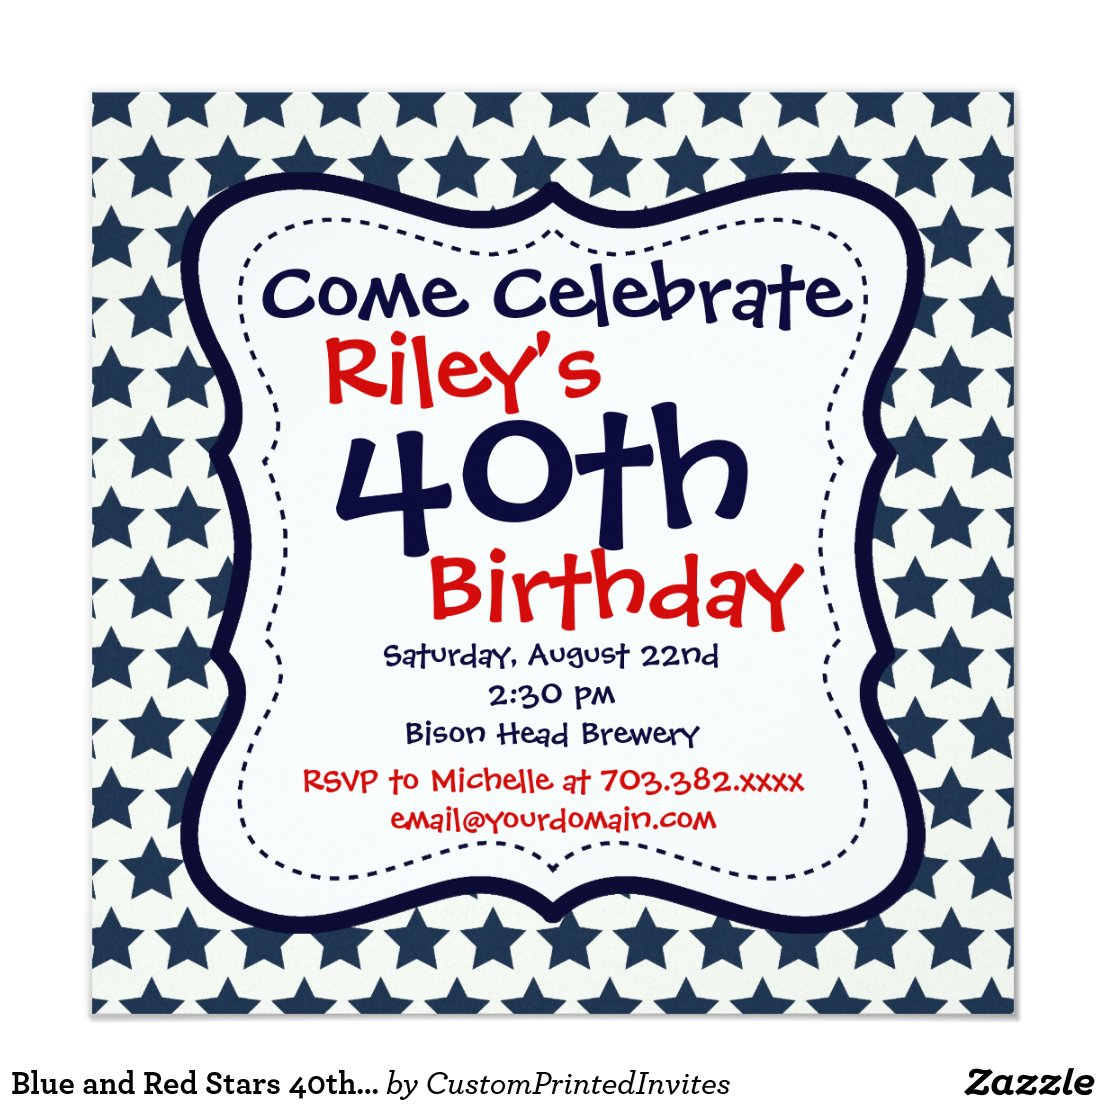 Blue and Red Stars 40th Birthday Party Invitation